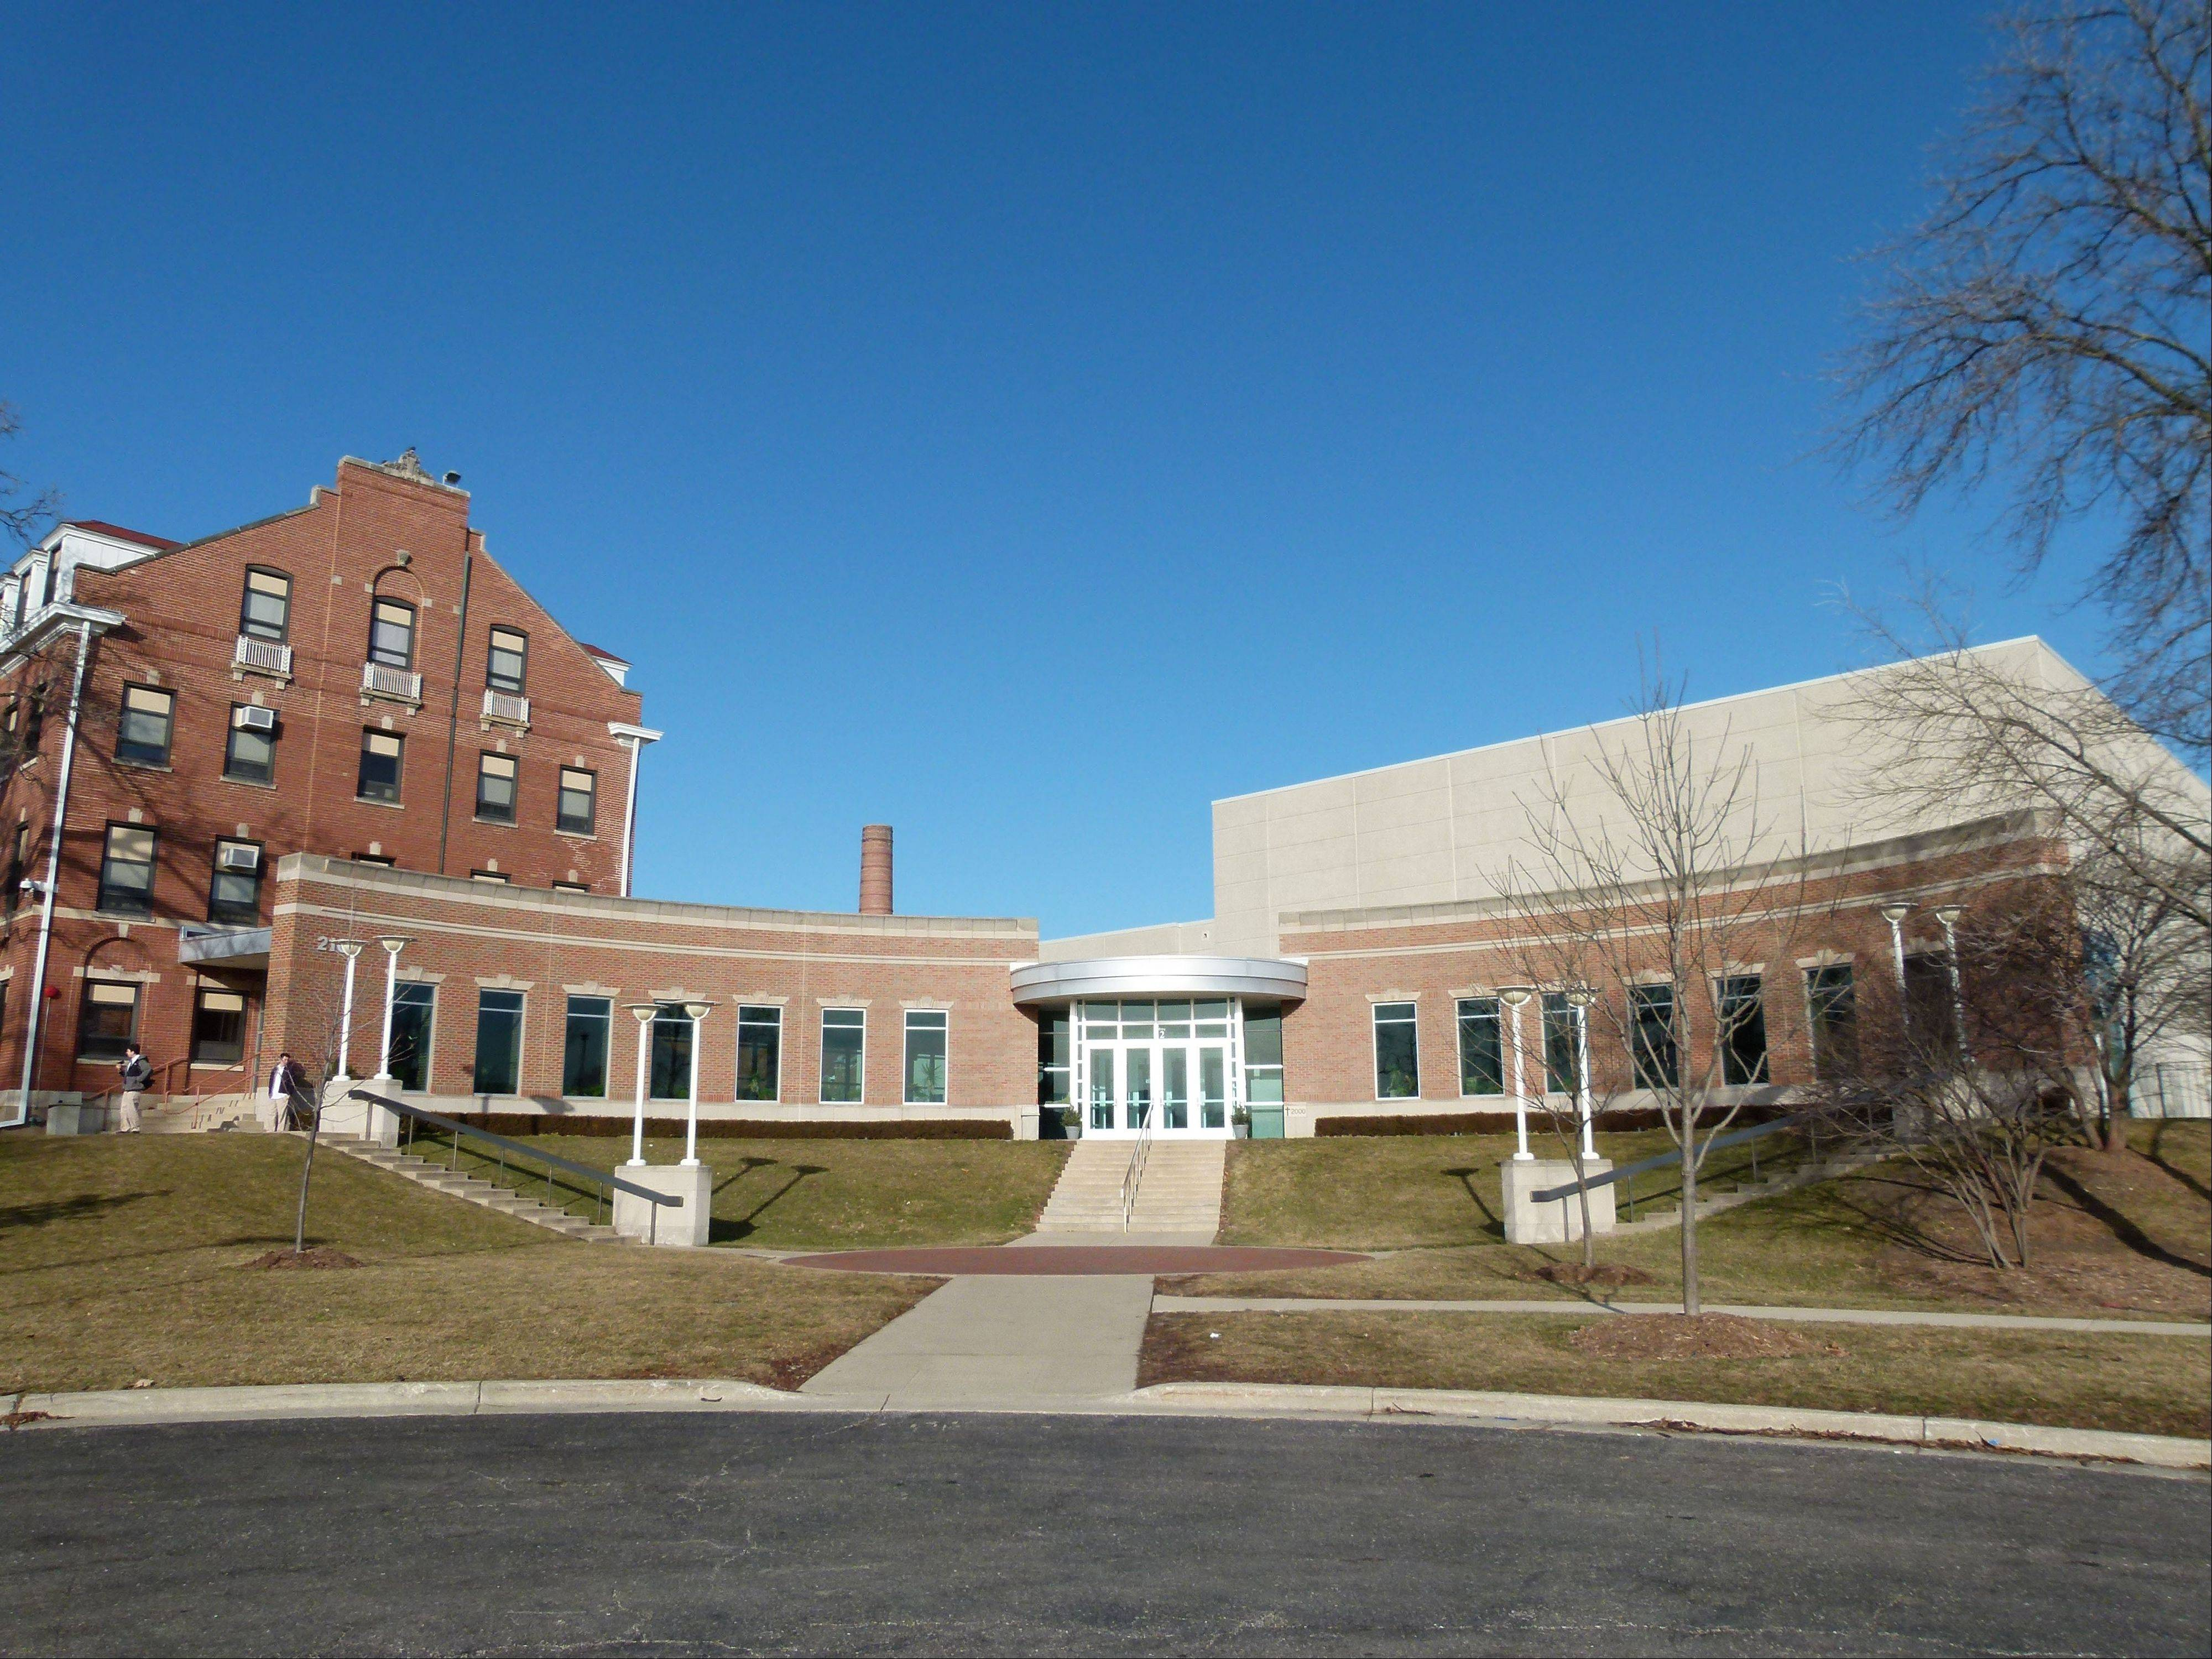 The easternmost building on the campus of Benet Academy is St. Daniel Hall, the performing arts center added in 2001.